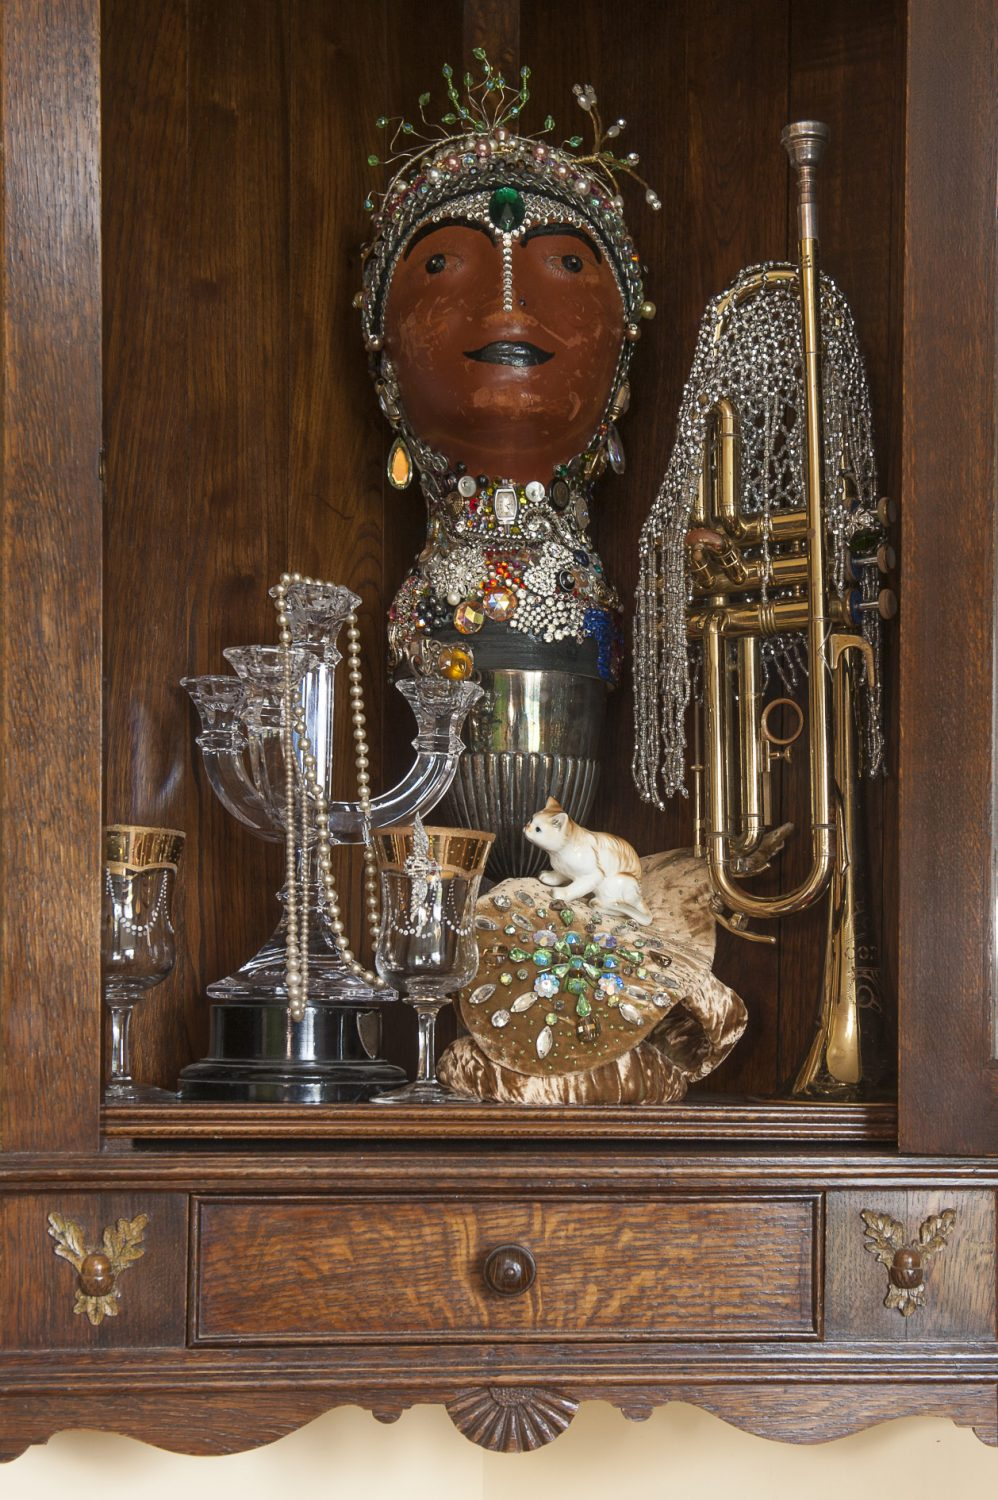 Adrian embellished the vintage wig stand with hundreds of crystals, sequins and buttons. He had the trumpet as a boy